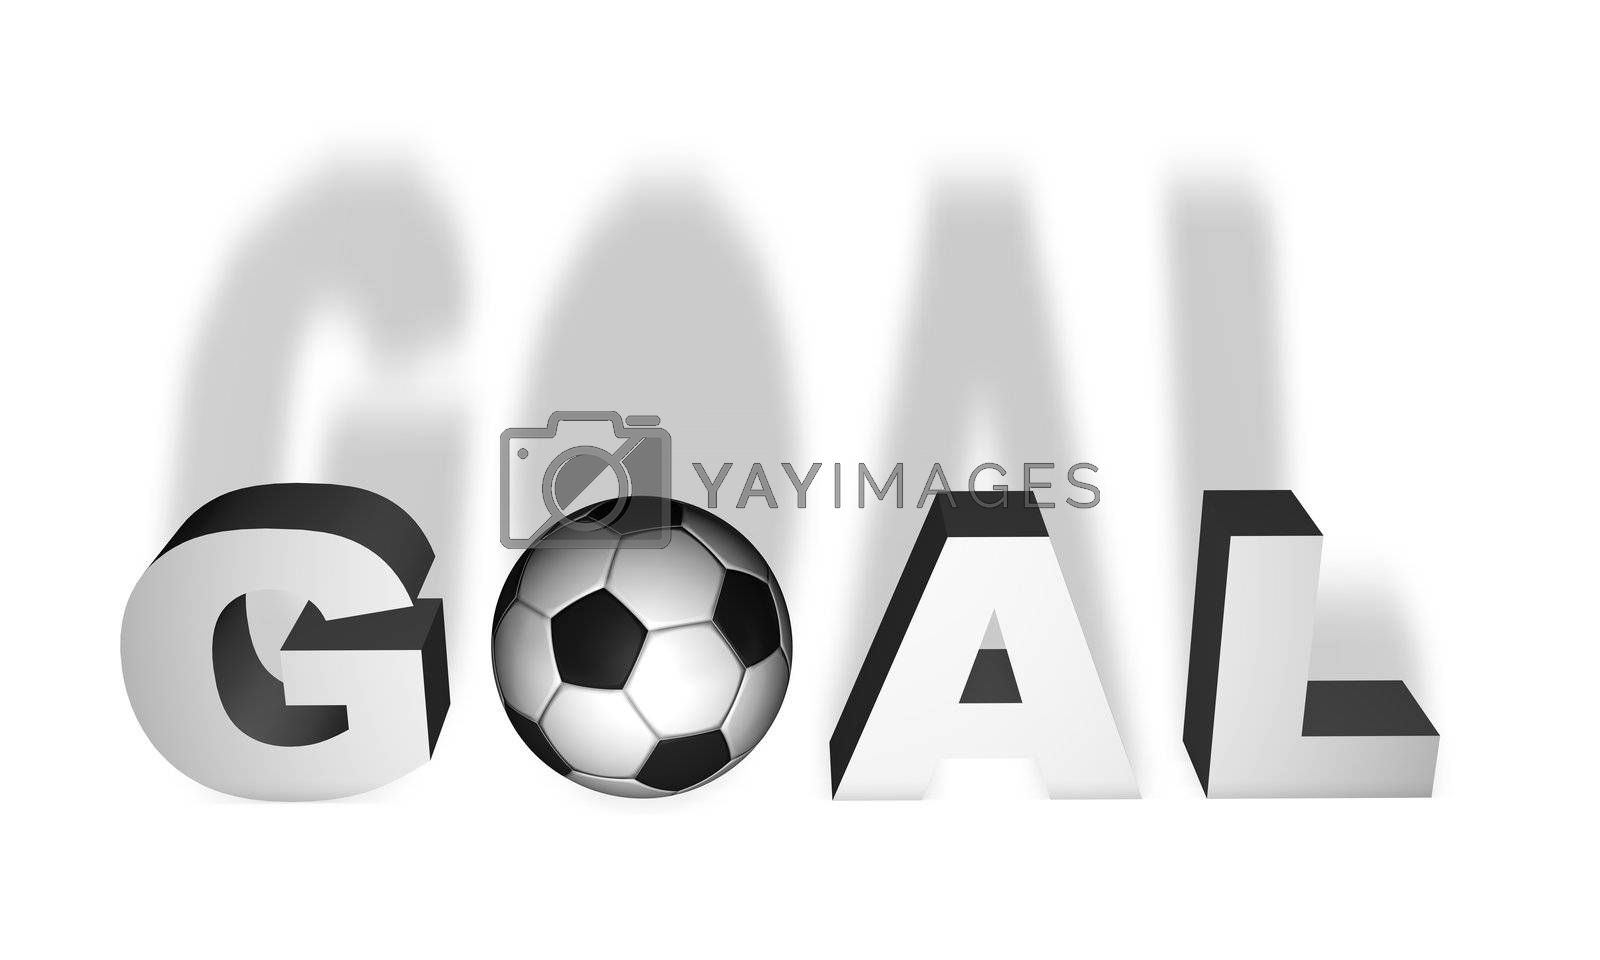 Goal word render in 3D with a soccer ball